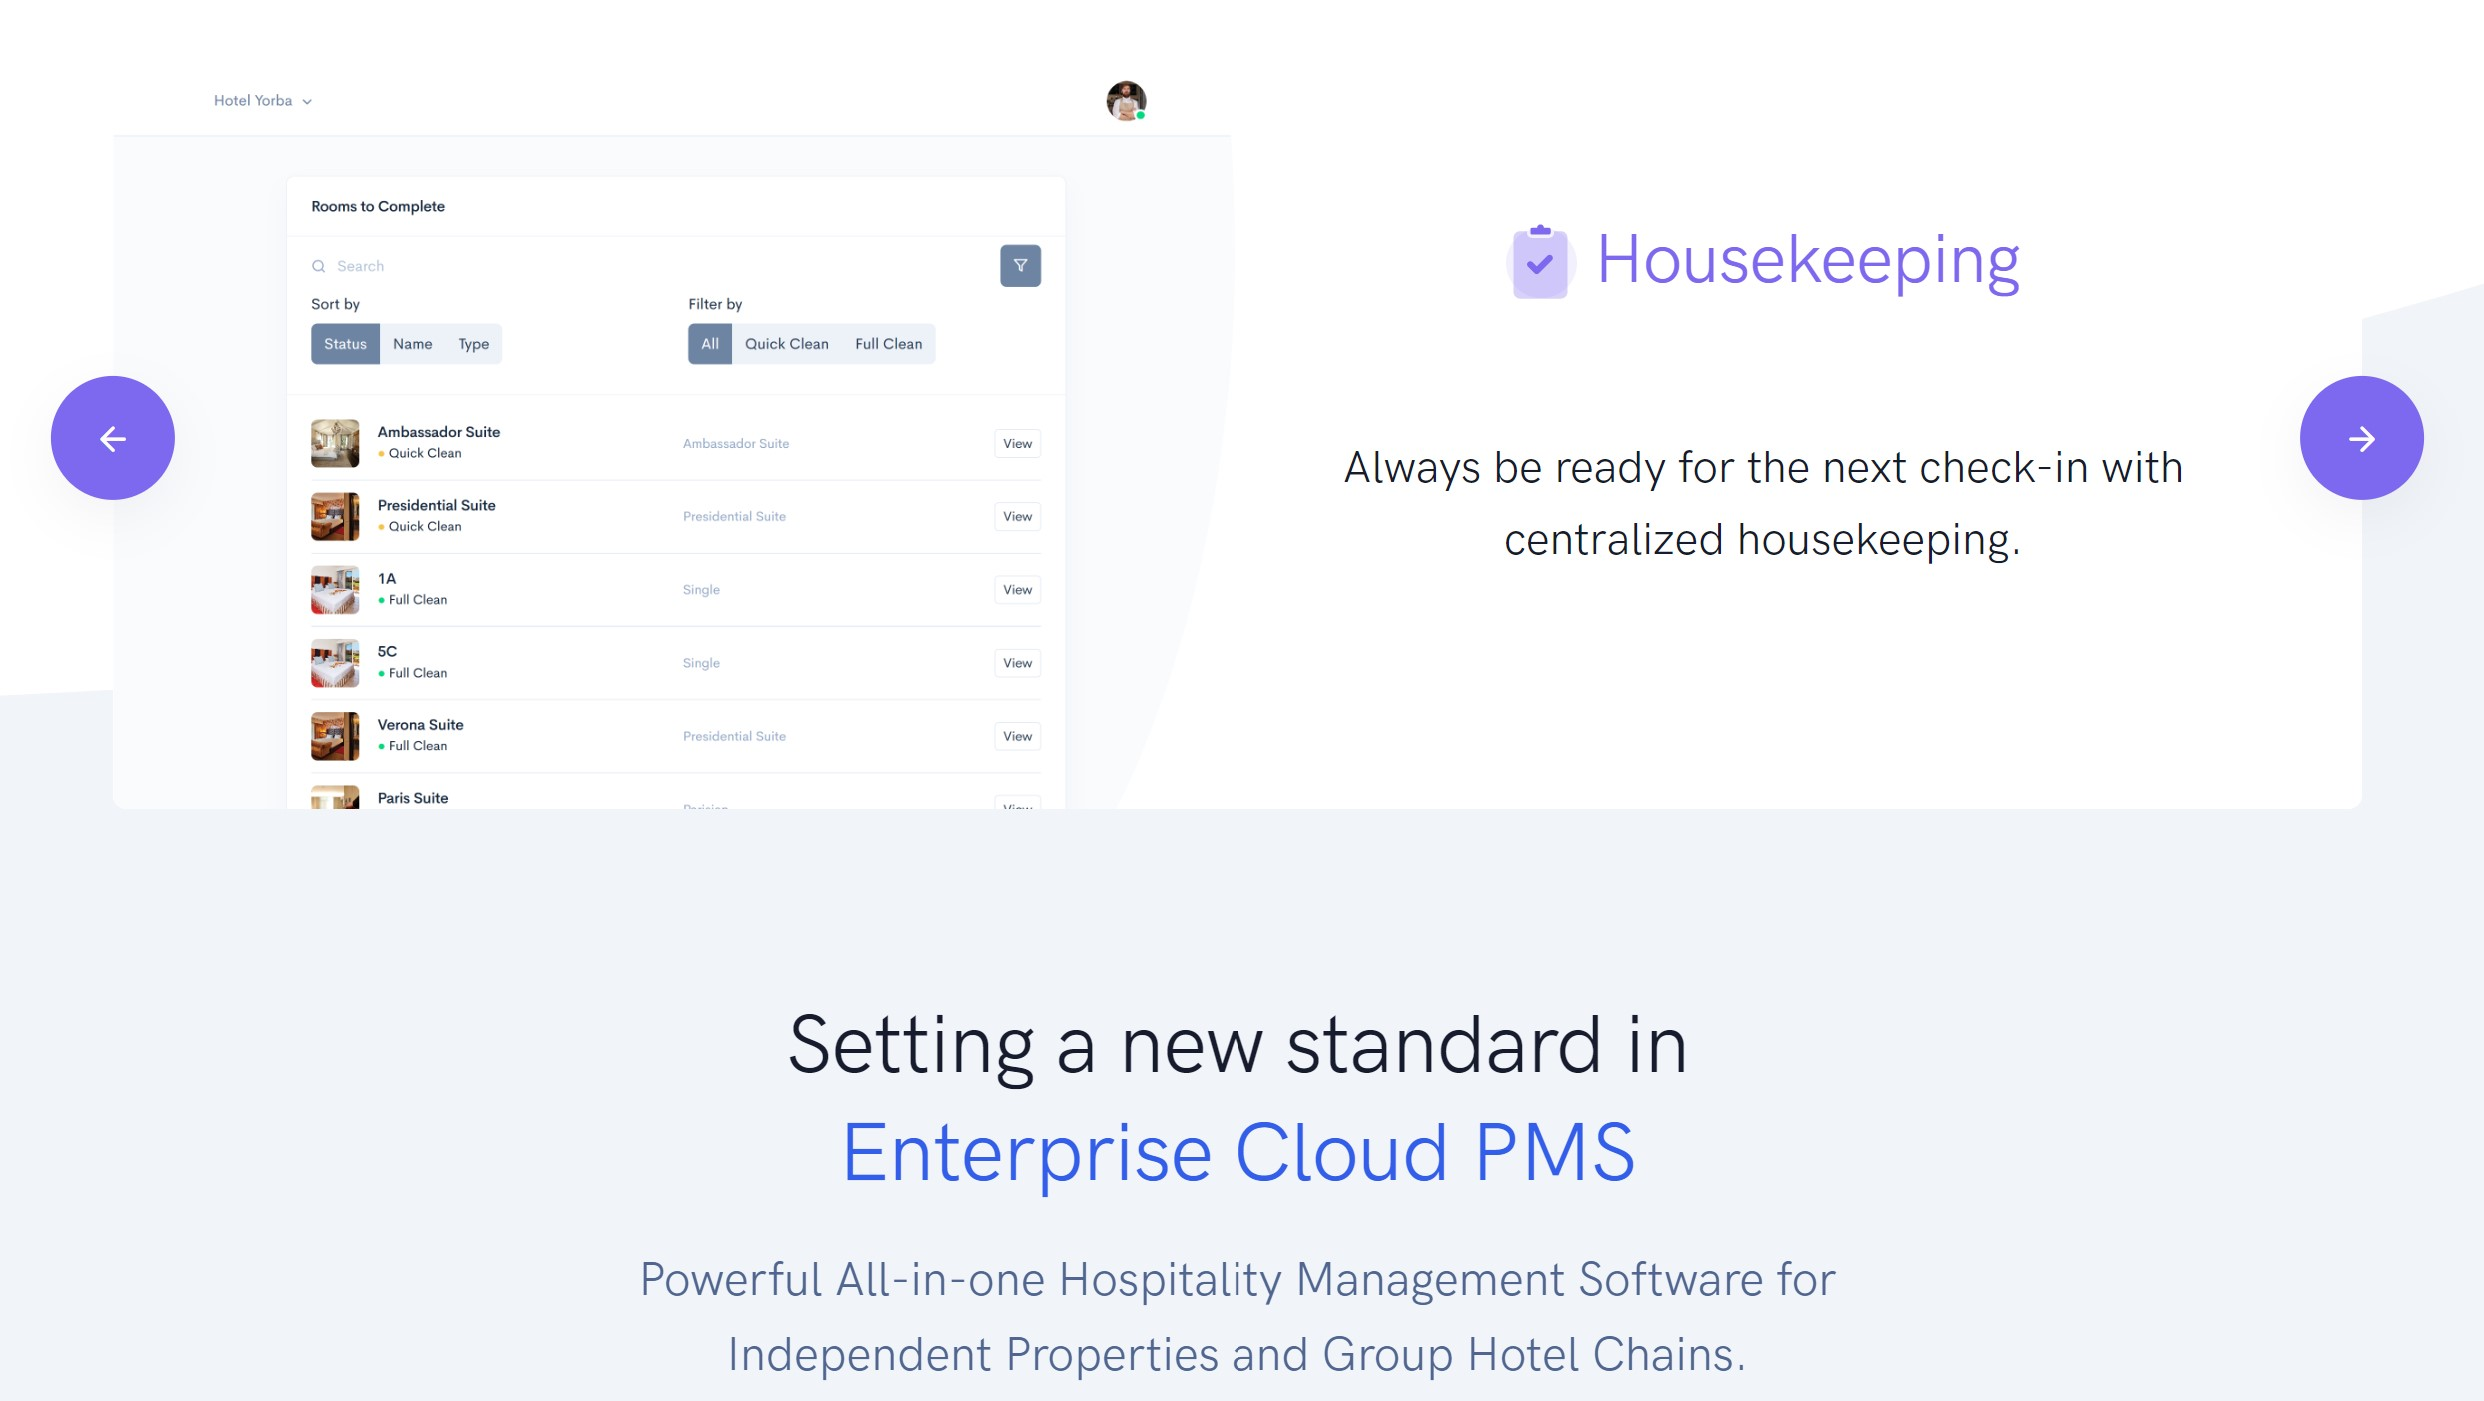 Hotel Housekeeping & Hotel Maintenance Management Coordinate daily room preparation for your housekeeping staff. Rooms are organized into quick and full clean, and maintenance records are available in your Back Office.